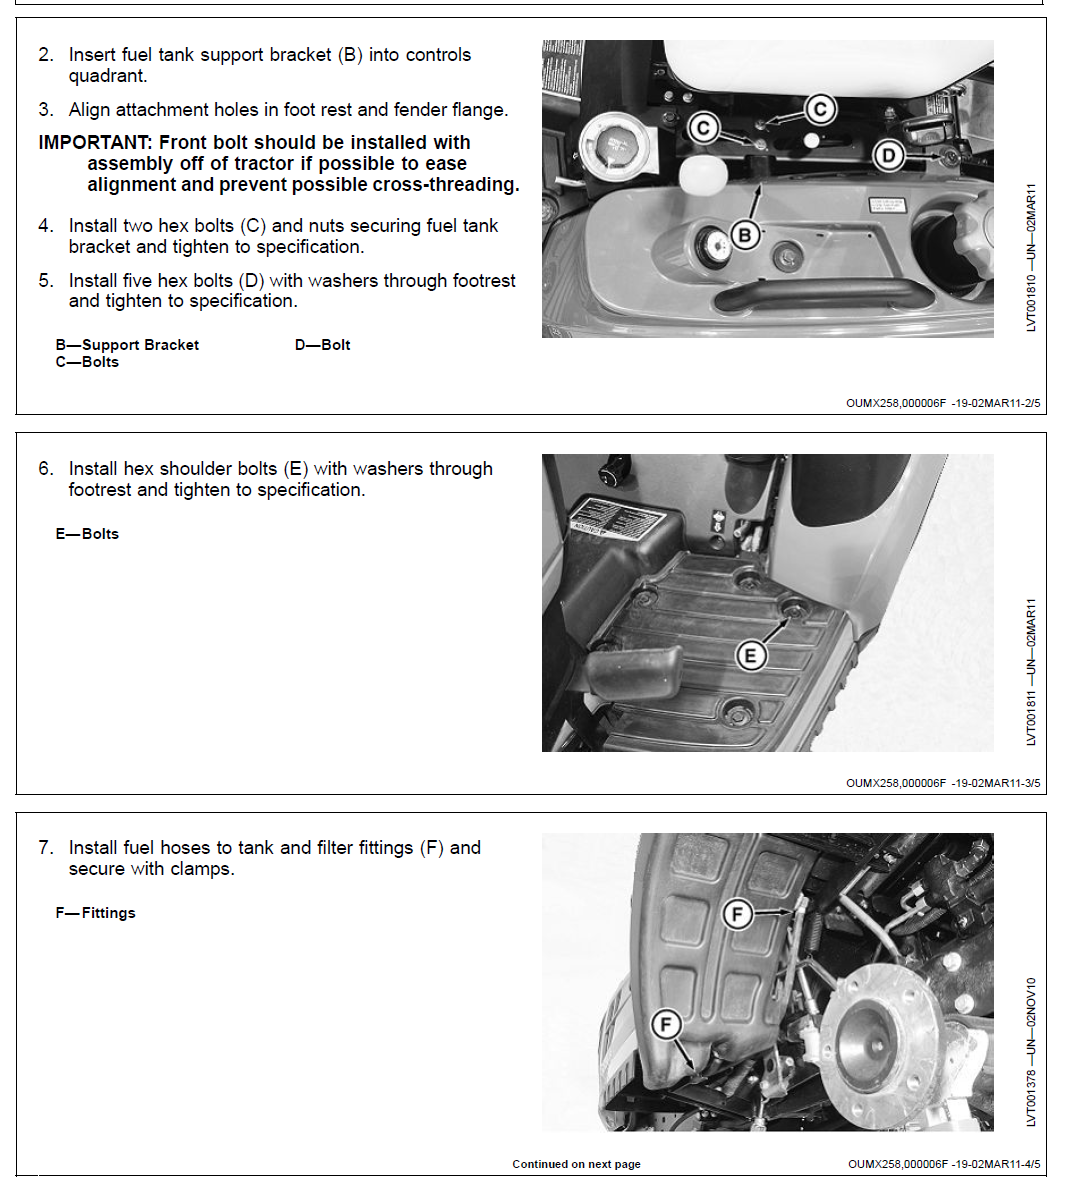 1025R Fuel Tank Removal_3.PNG